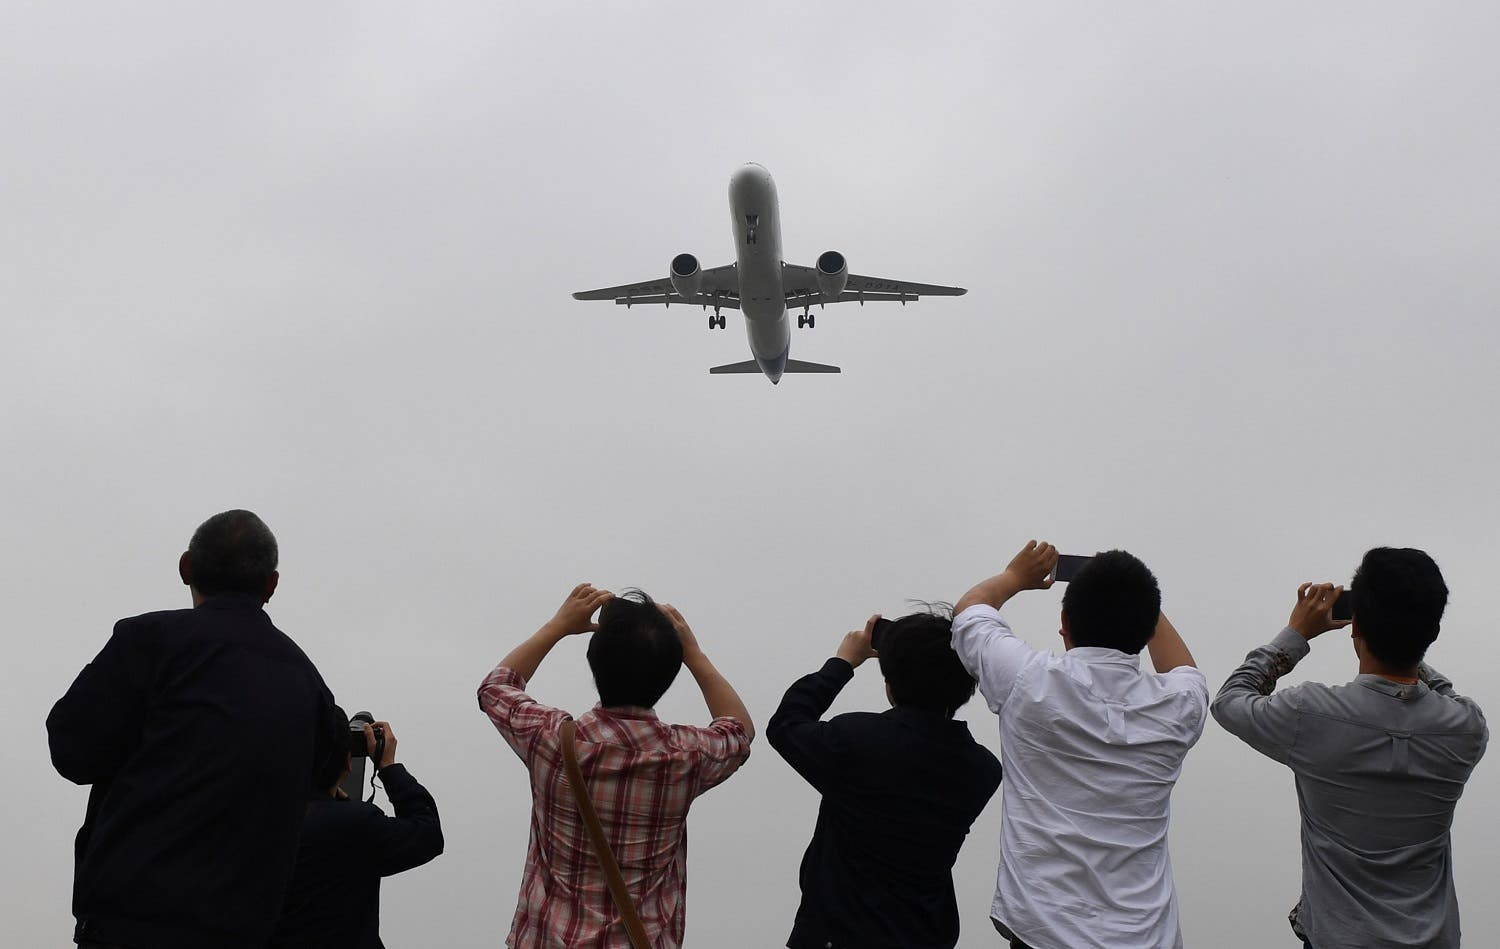 Spectators take photos as they watch the Comac C919, China's first large passenger jet, coming in for a landing on its maiden flight at Shanghai's Pudong airport. (Reuters)